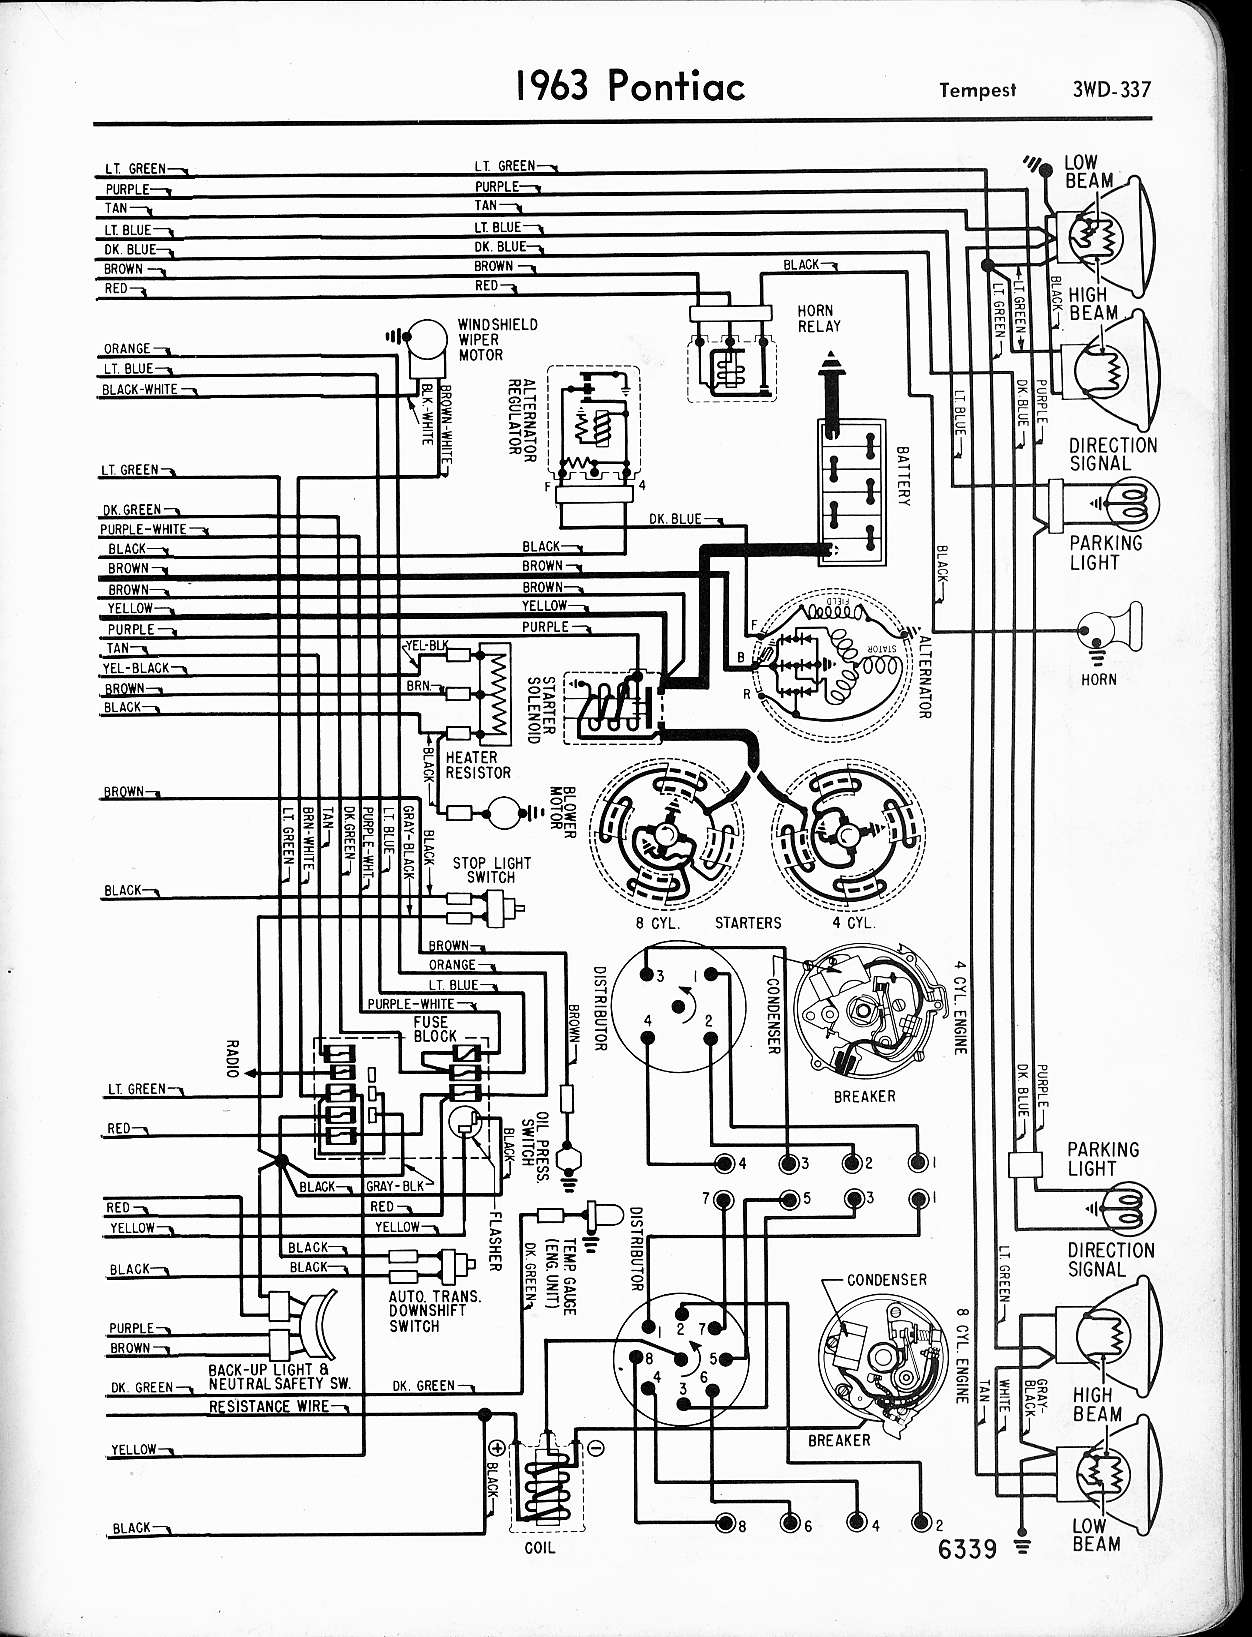 Wallace Racing Wiring Diagrams Free Weebly 1963 Tempest Right Page